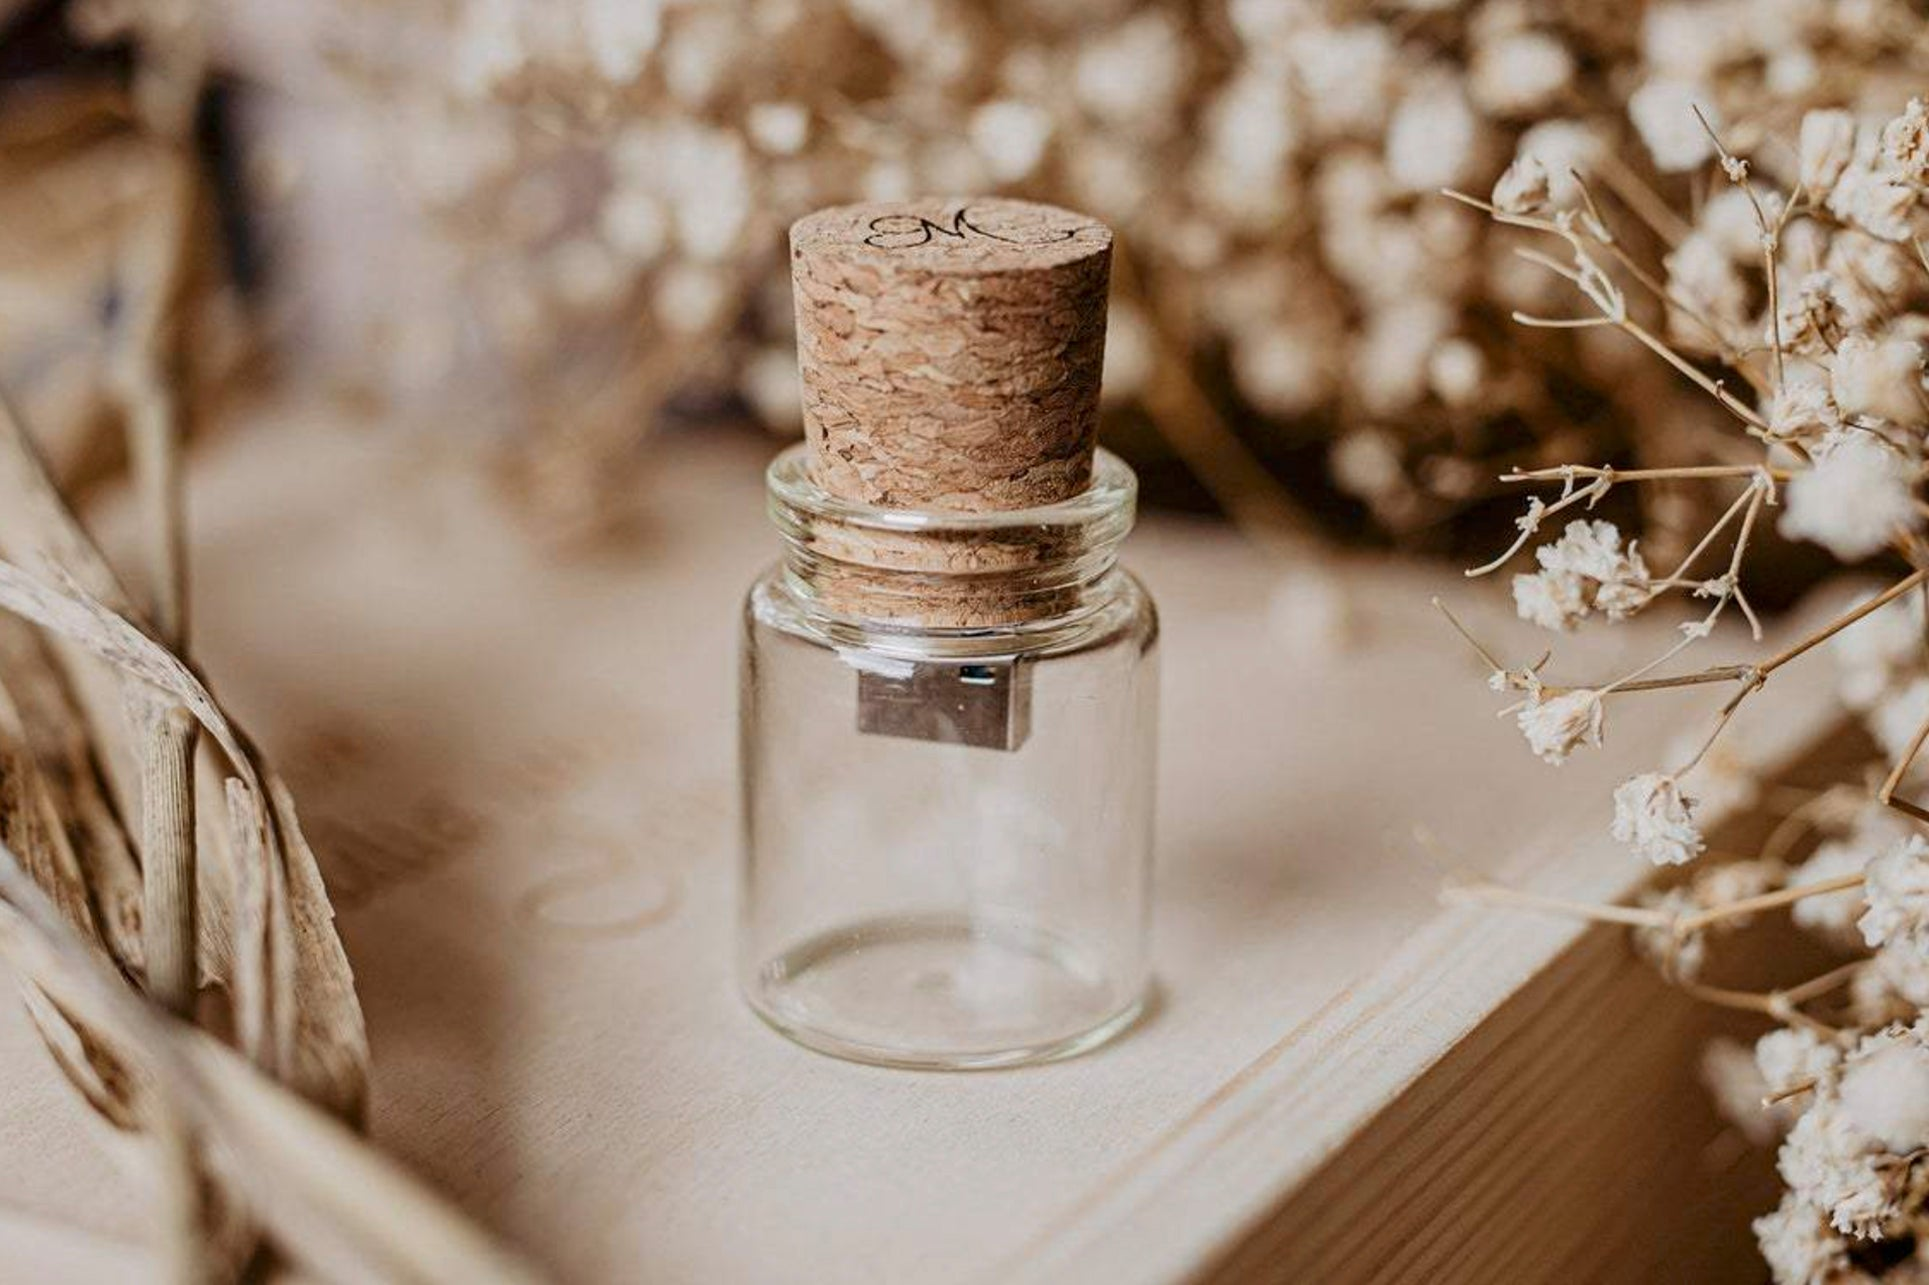 Cork-And-Bottle-USB